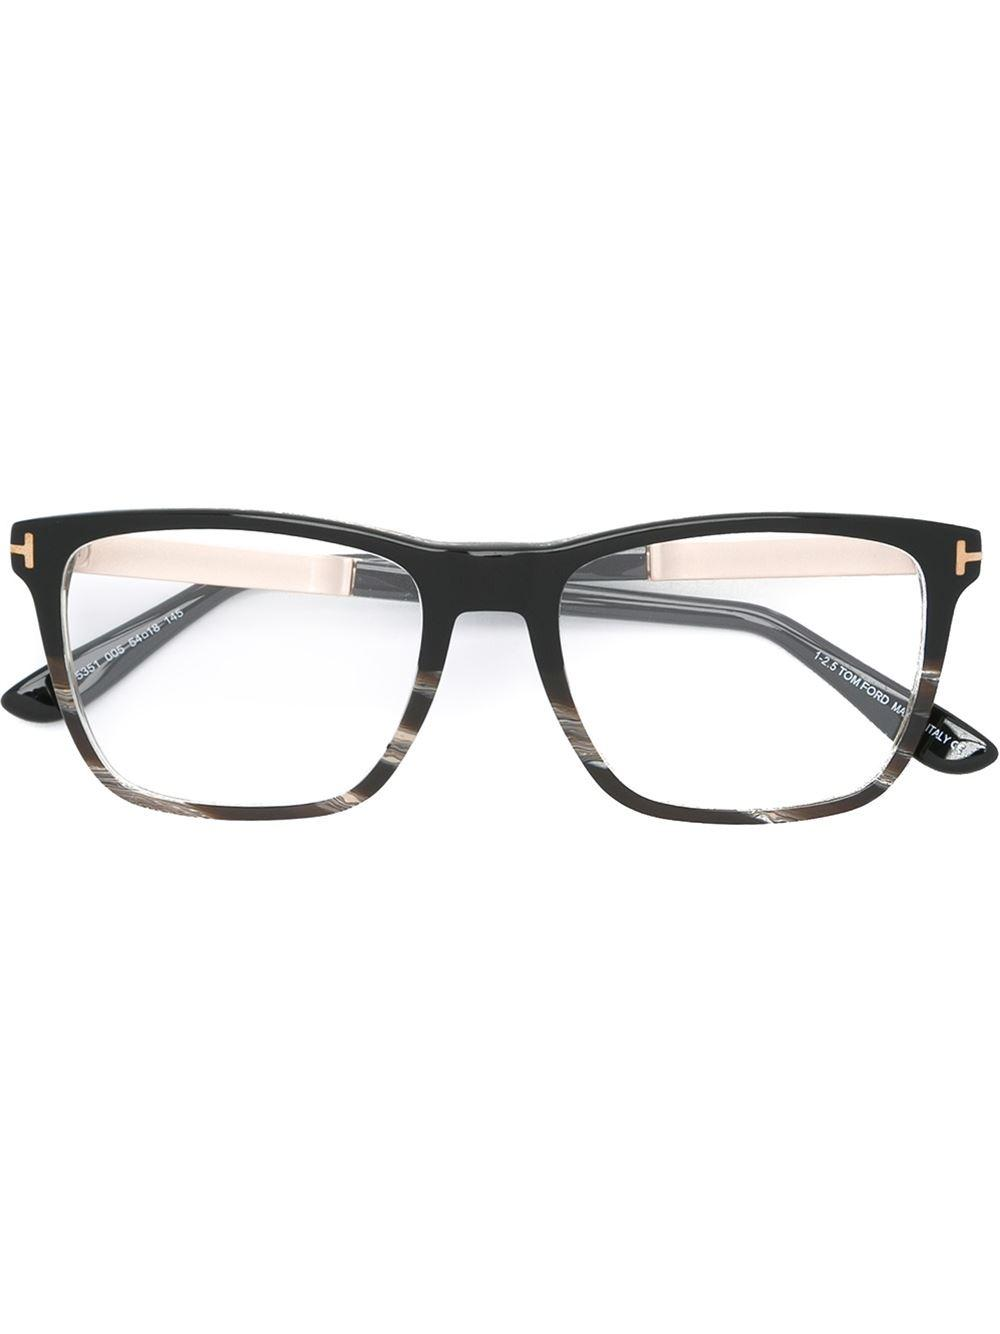 Glasses Frame Tom Ford : Tom ford Square Frame Glasses in Black for Men Lyst